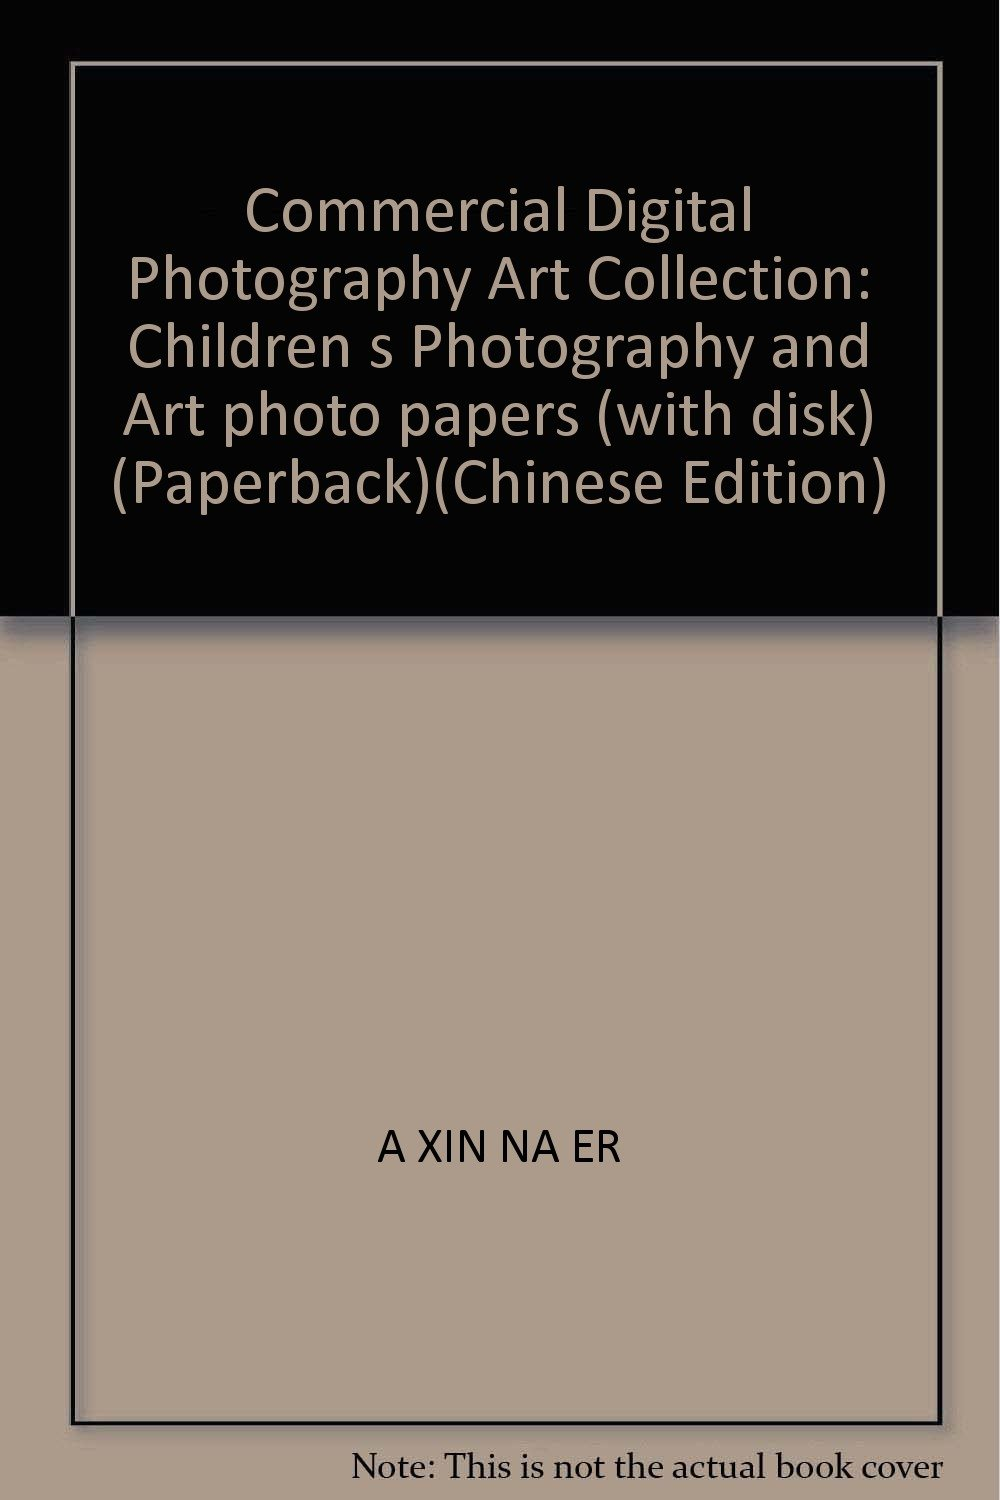 Commercial Digital Photography Art Collection: Children s Photography and Art photo papers (with disk) (Paperback)